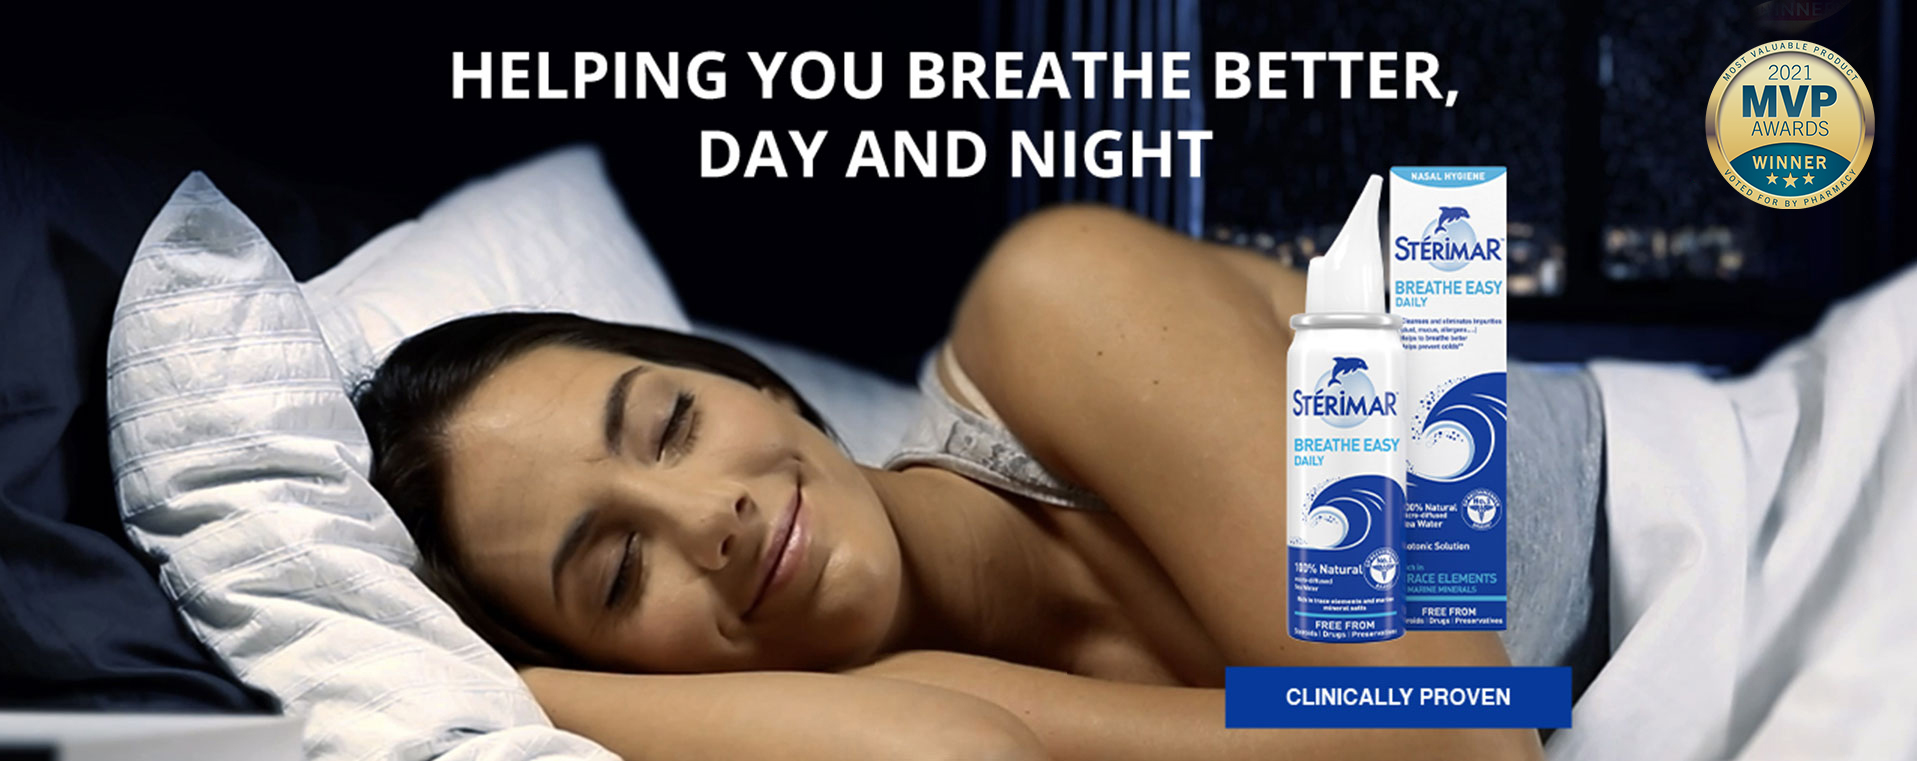 BREATHE BETTER, DAY AND NIGHT